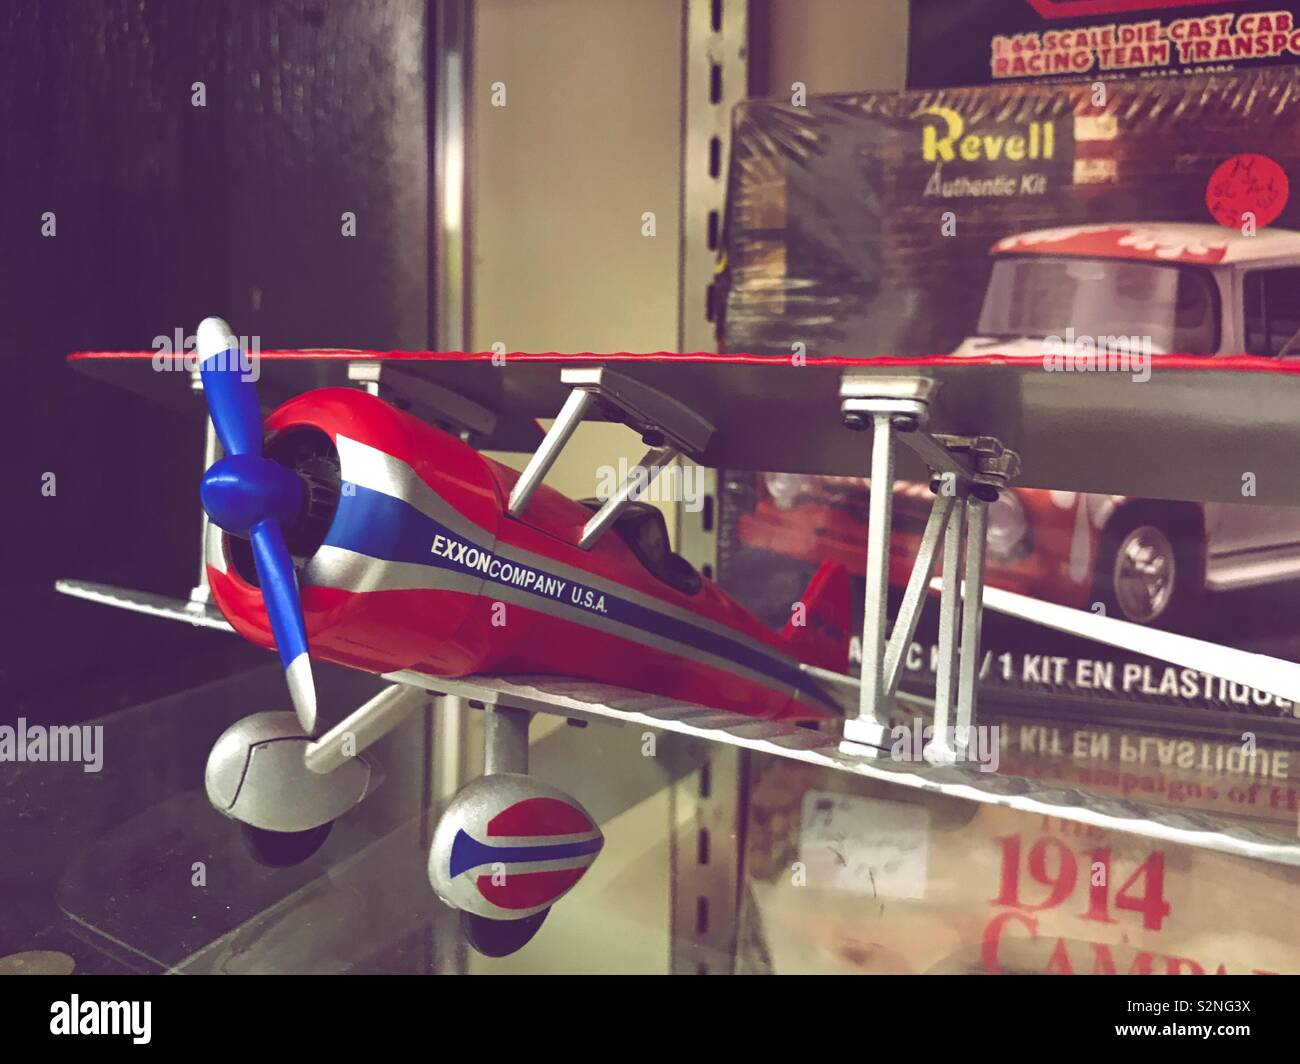 Bright red and blue model airplane on display in flea mall - Stock Image